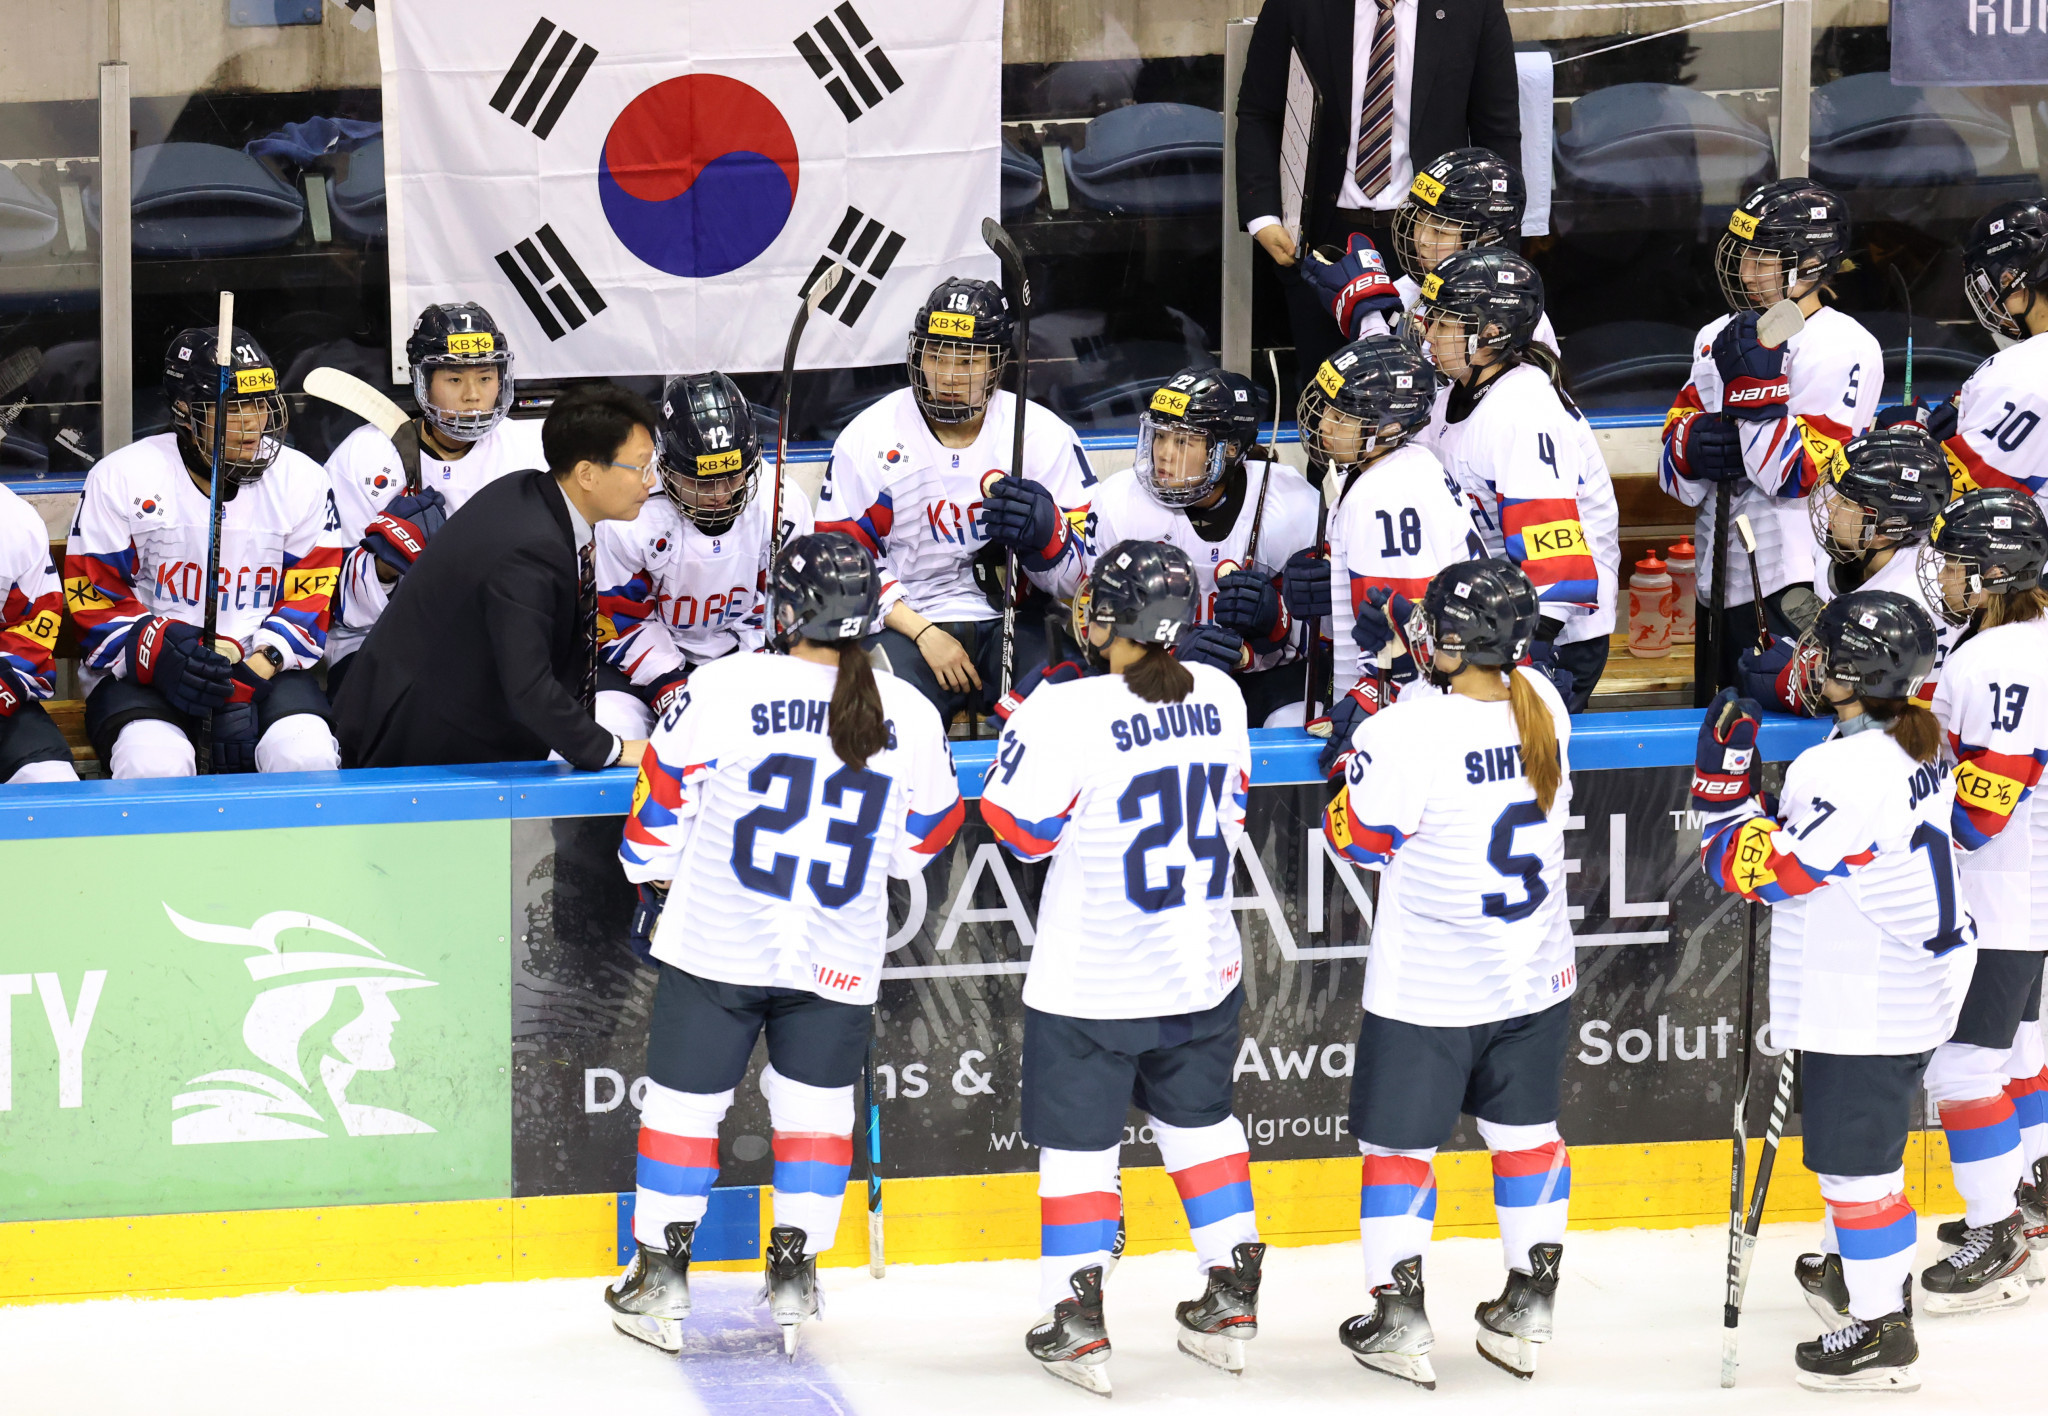 South Korea, Italy and Poland ice hockey teams reach final qualifying round for Beijing 2022